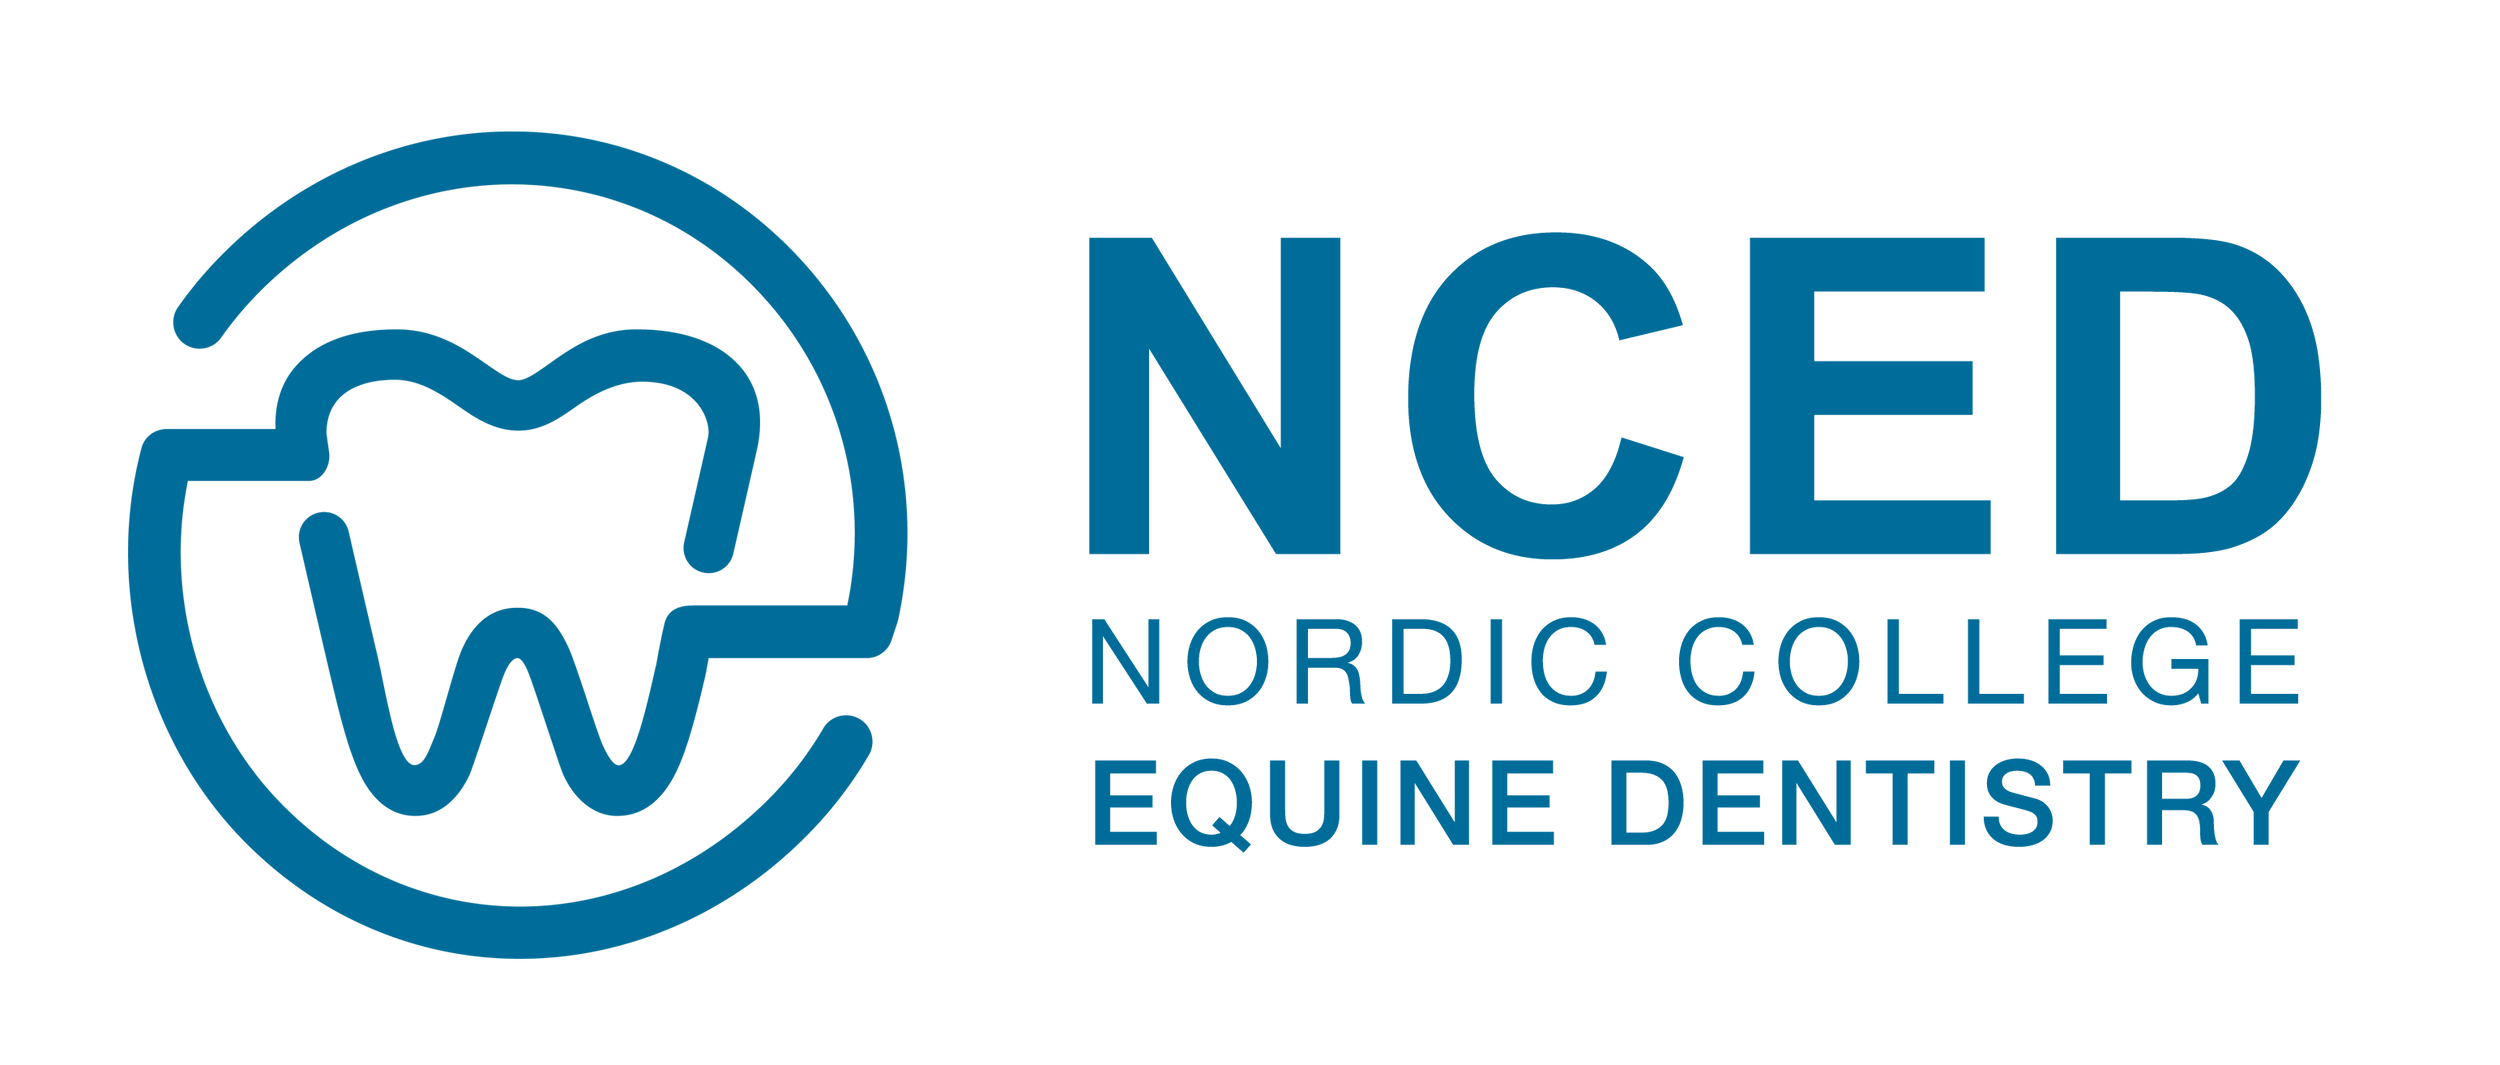 Equine Dentistry | NCED - Nordic College of Equine Dentistry